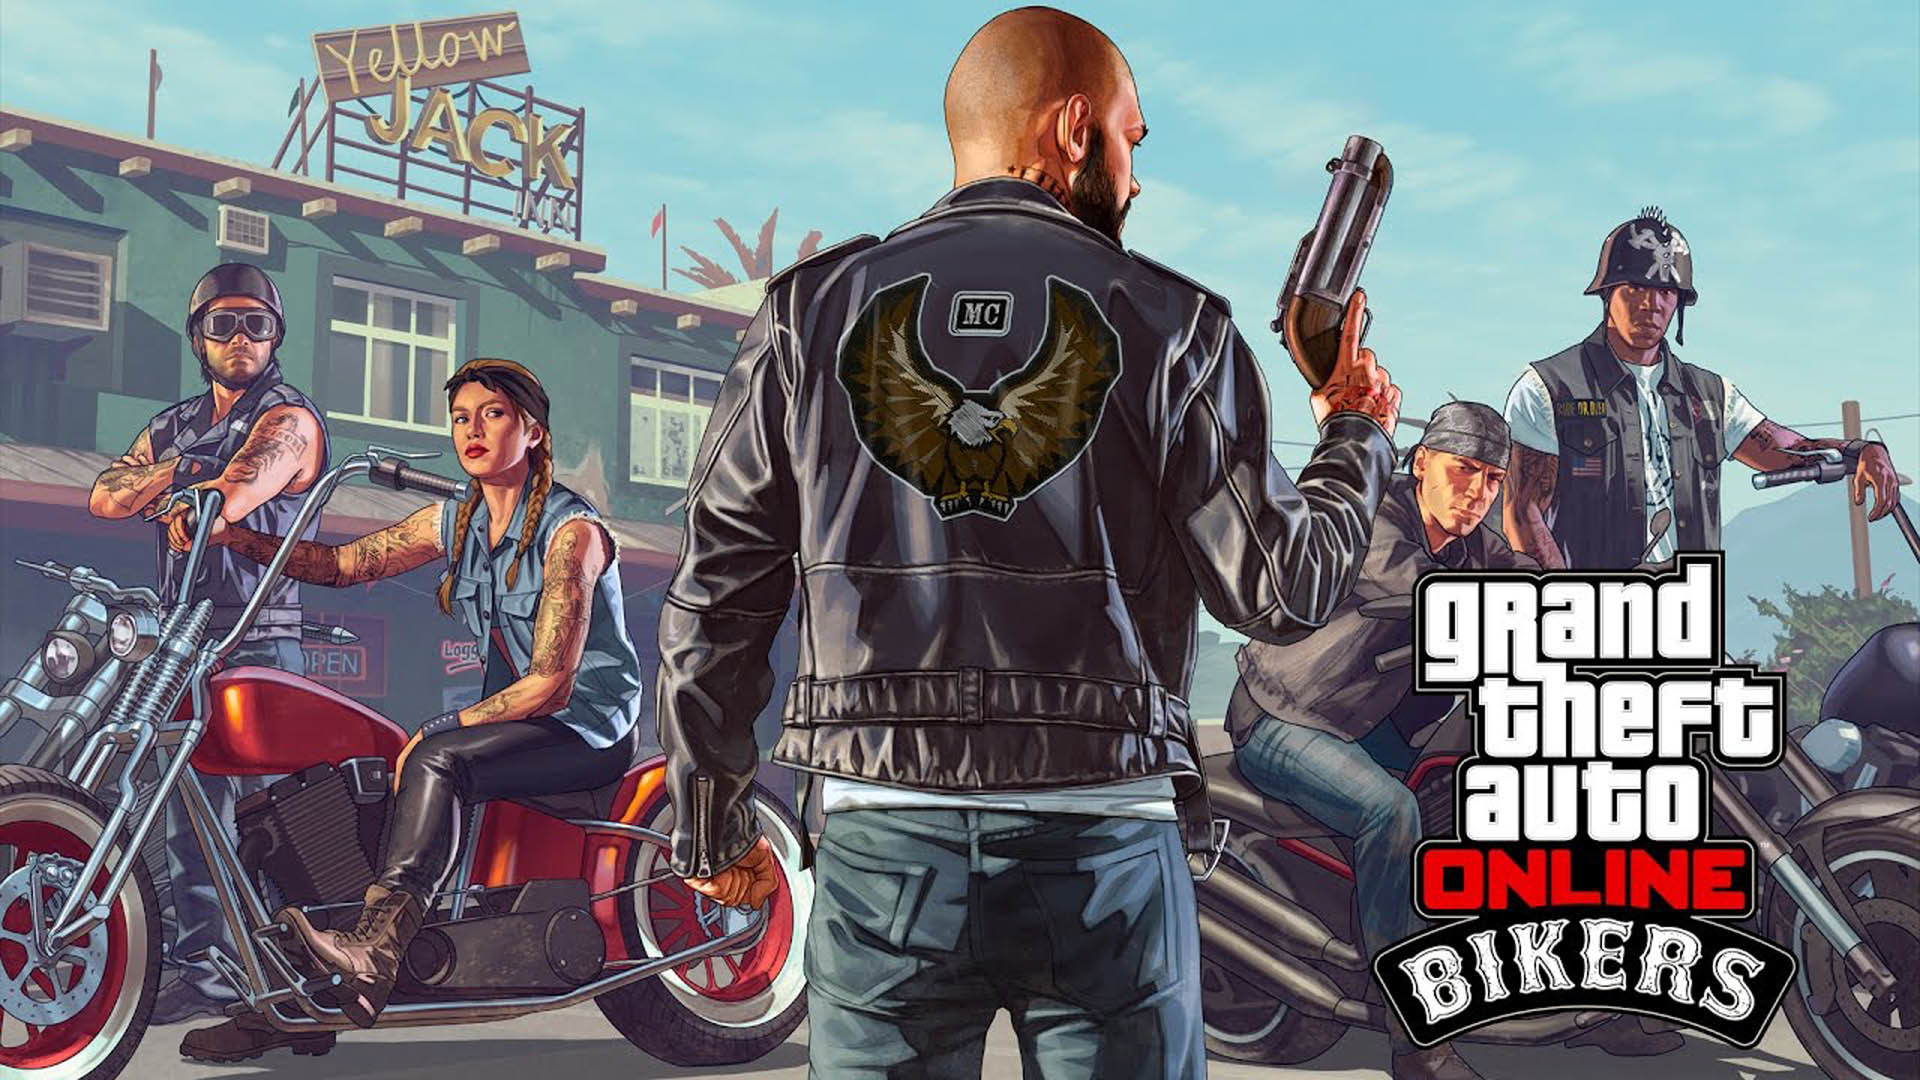 Official GTA 5 Artwork   Games to Play   Pinterest   Grand theft auto,  Grand thef auto and Video games